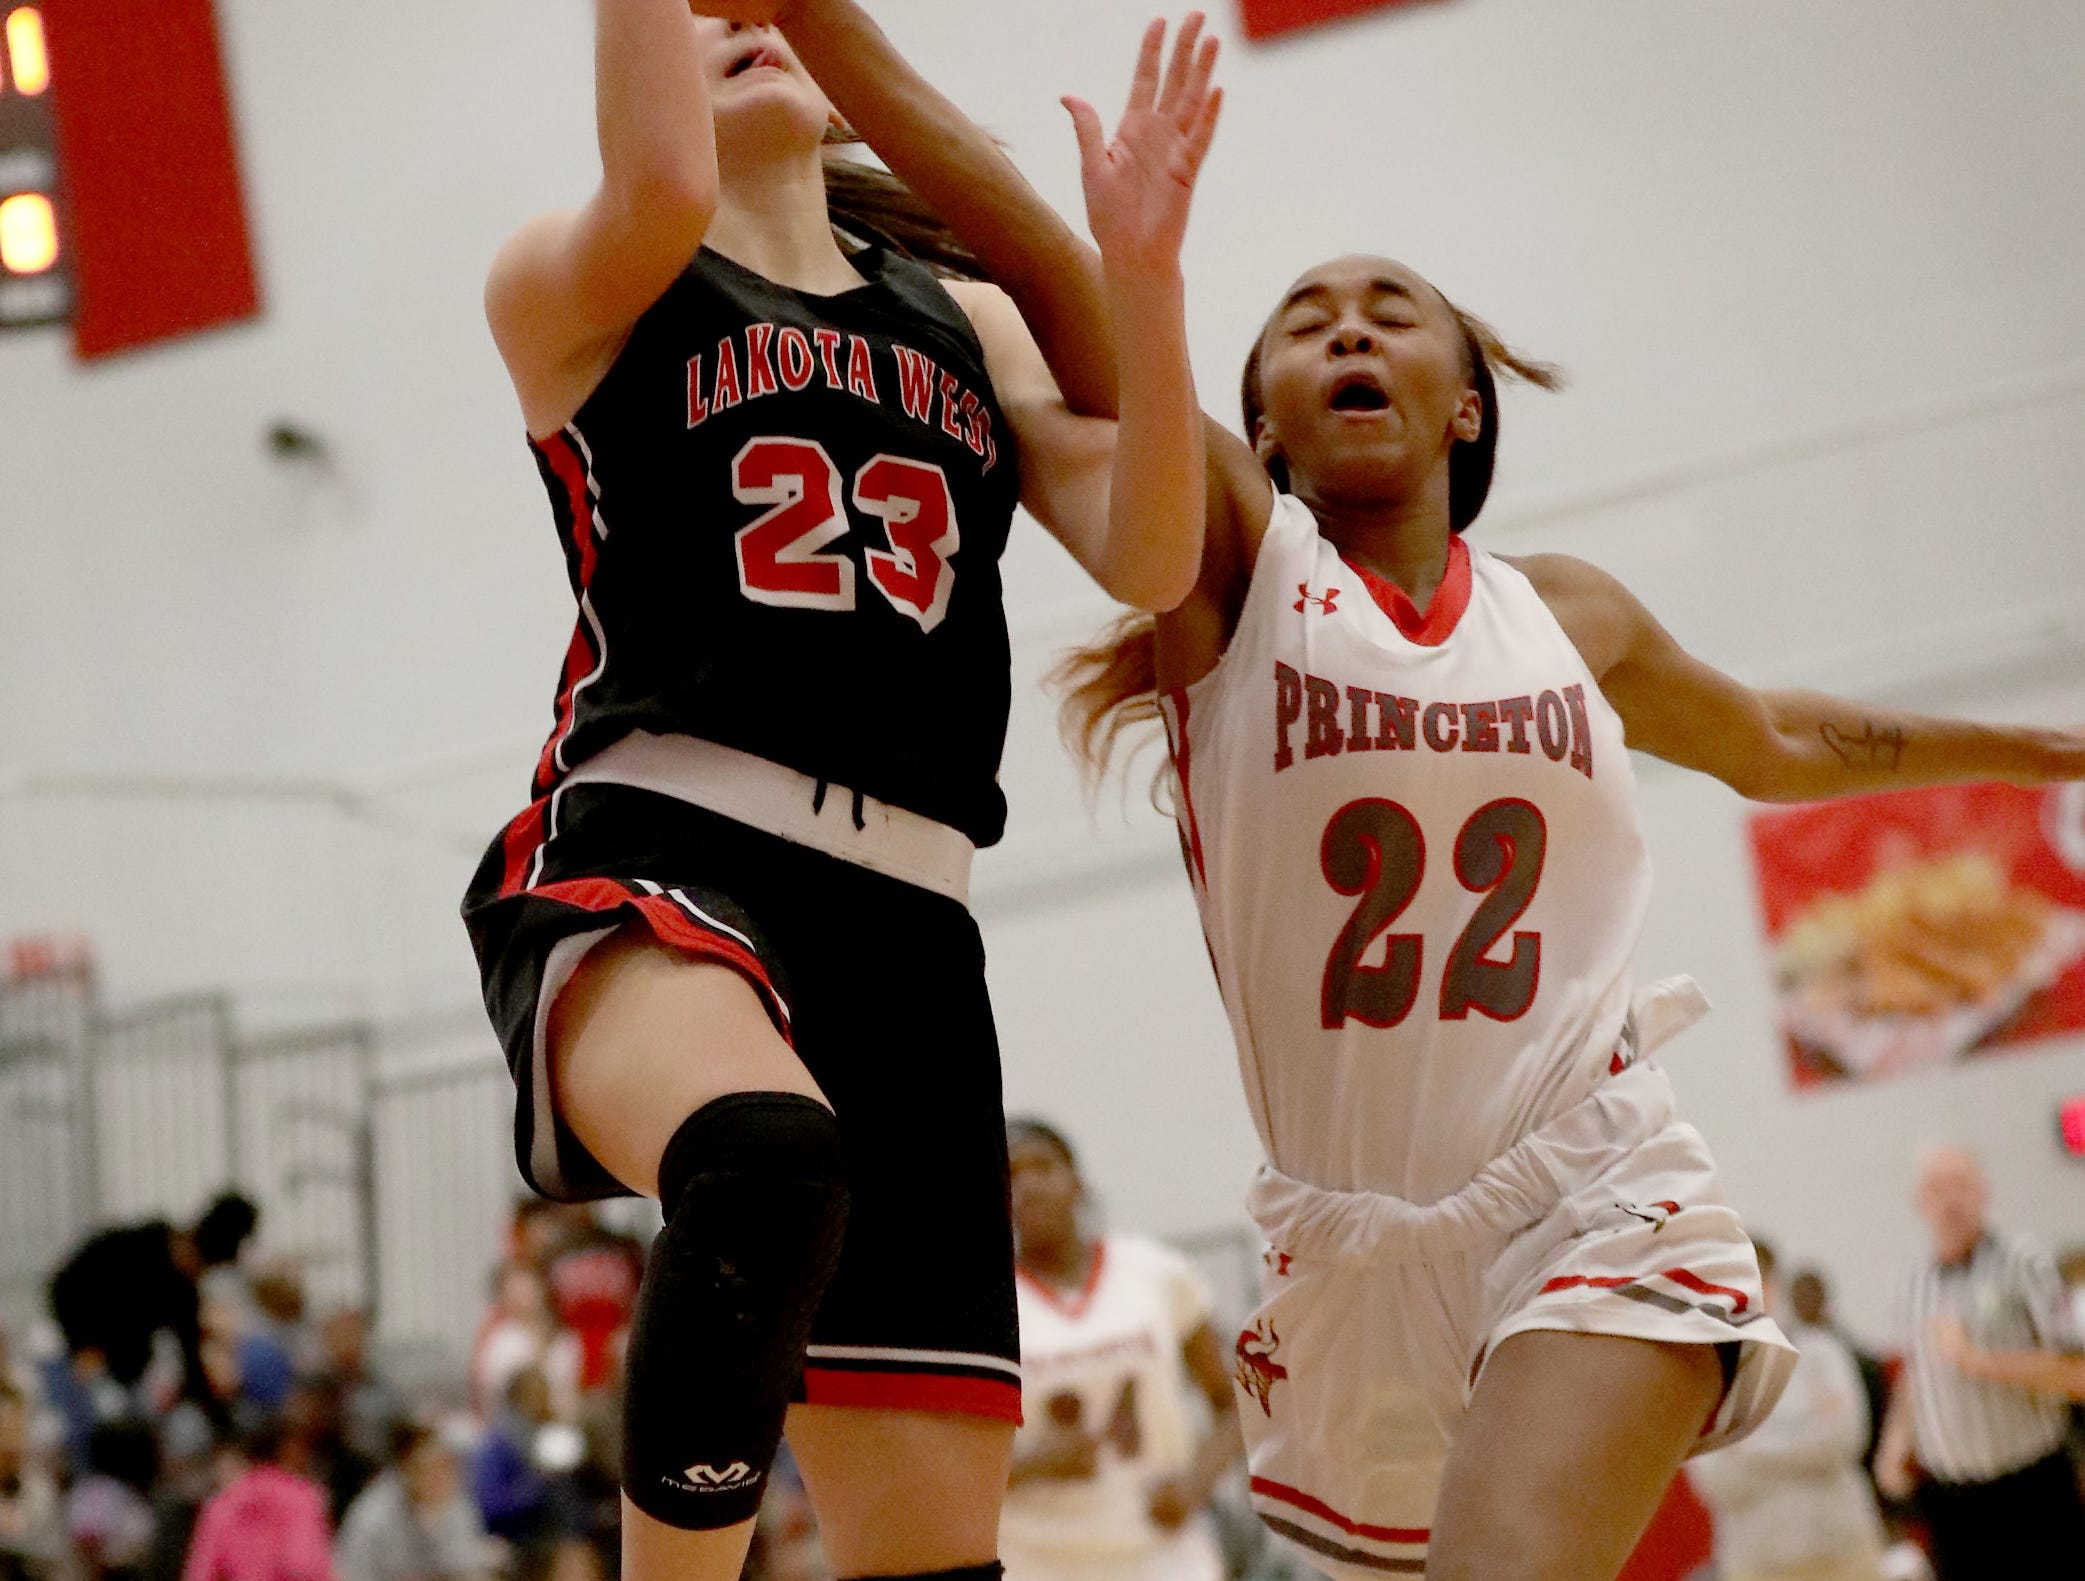 Lakota West forward Kailyn Dudukovich (23) drives to the basket against Princeton  guard Jacquelyn Hinesmon   during their basketball game, Wednesday, Jan.16,2019.